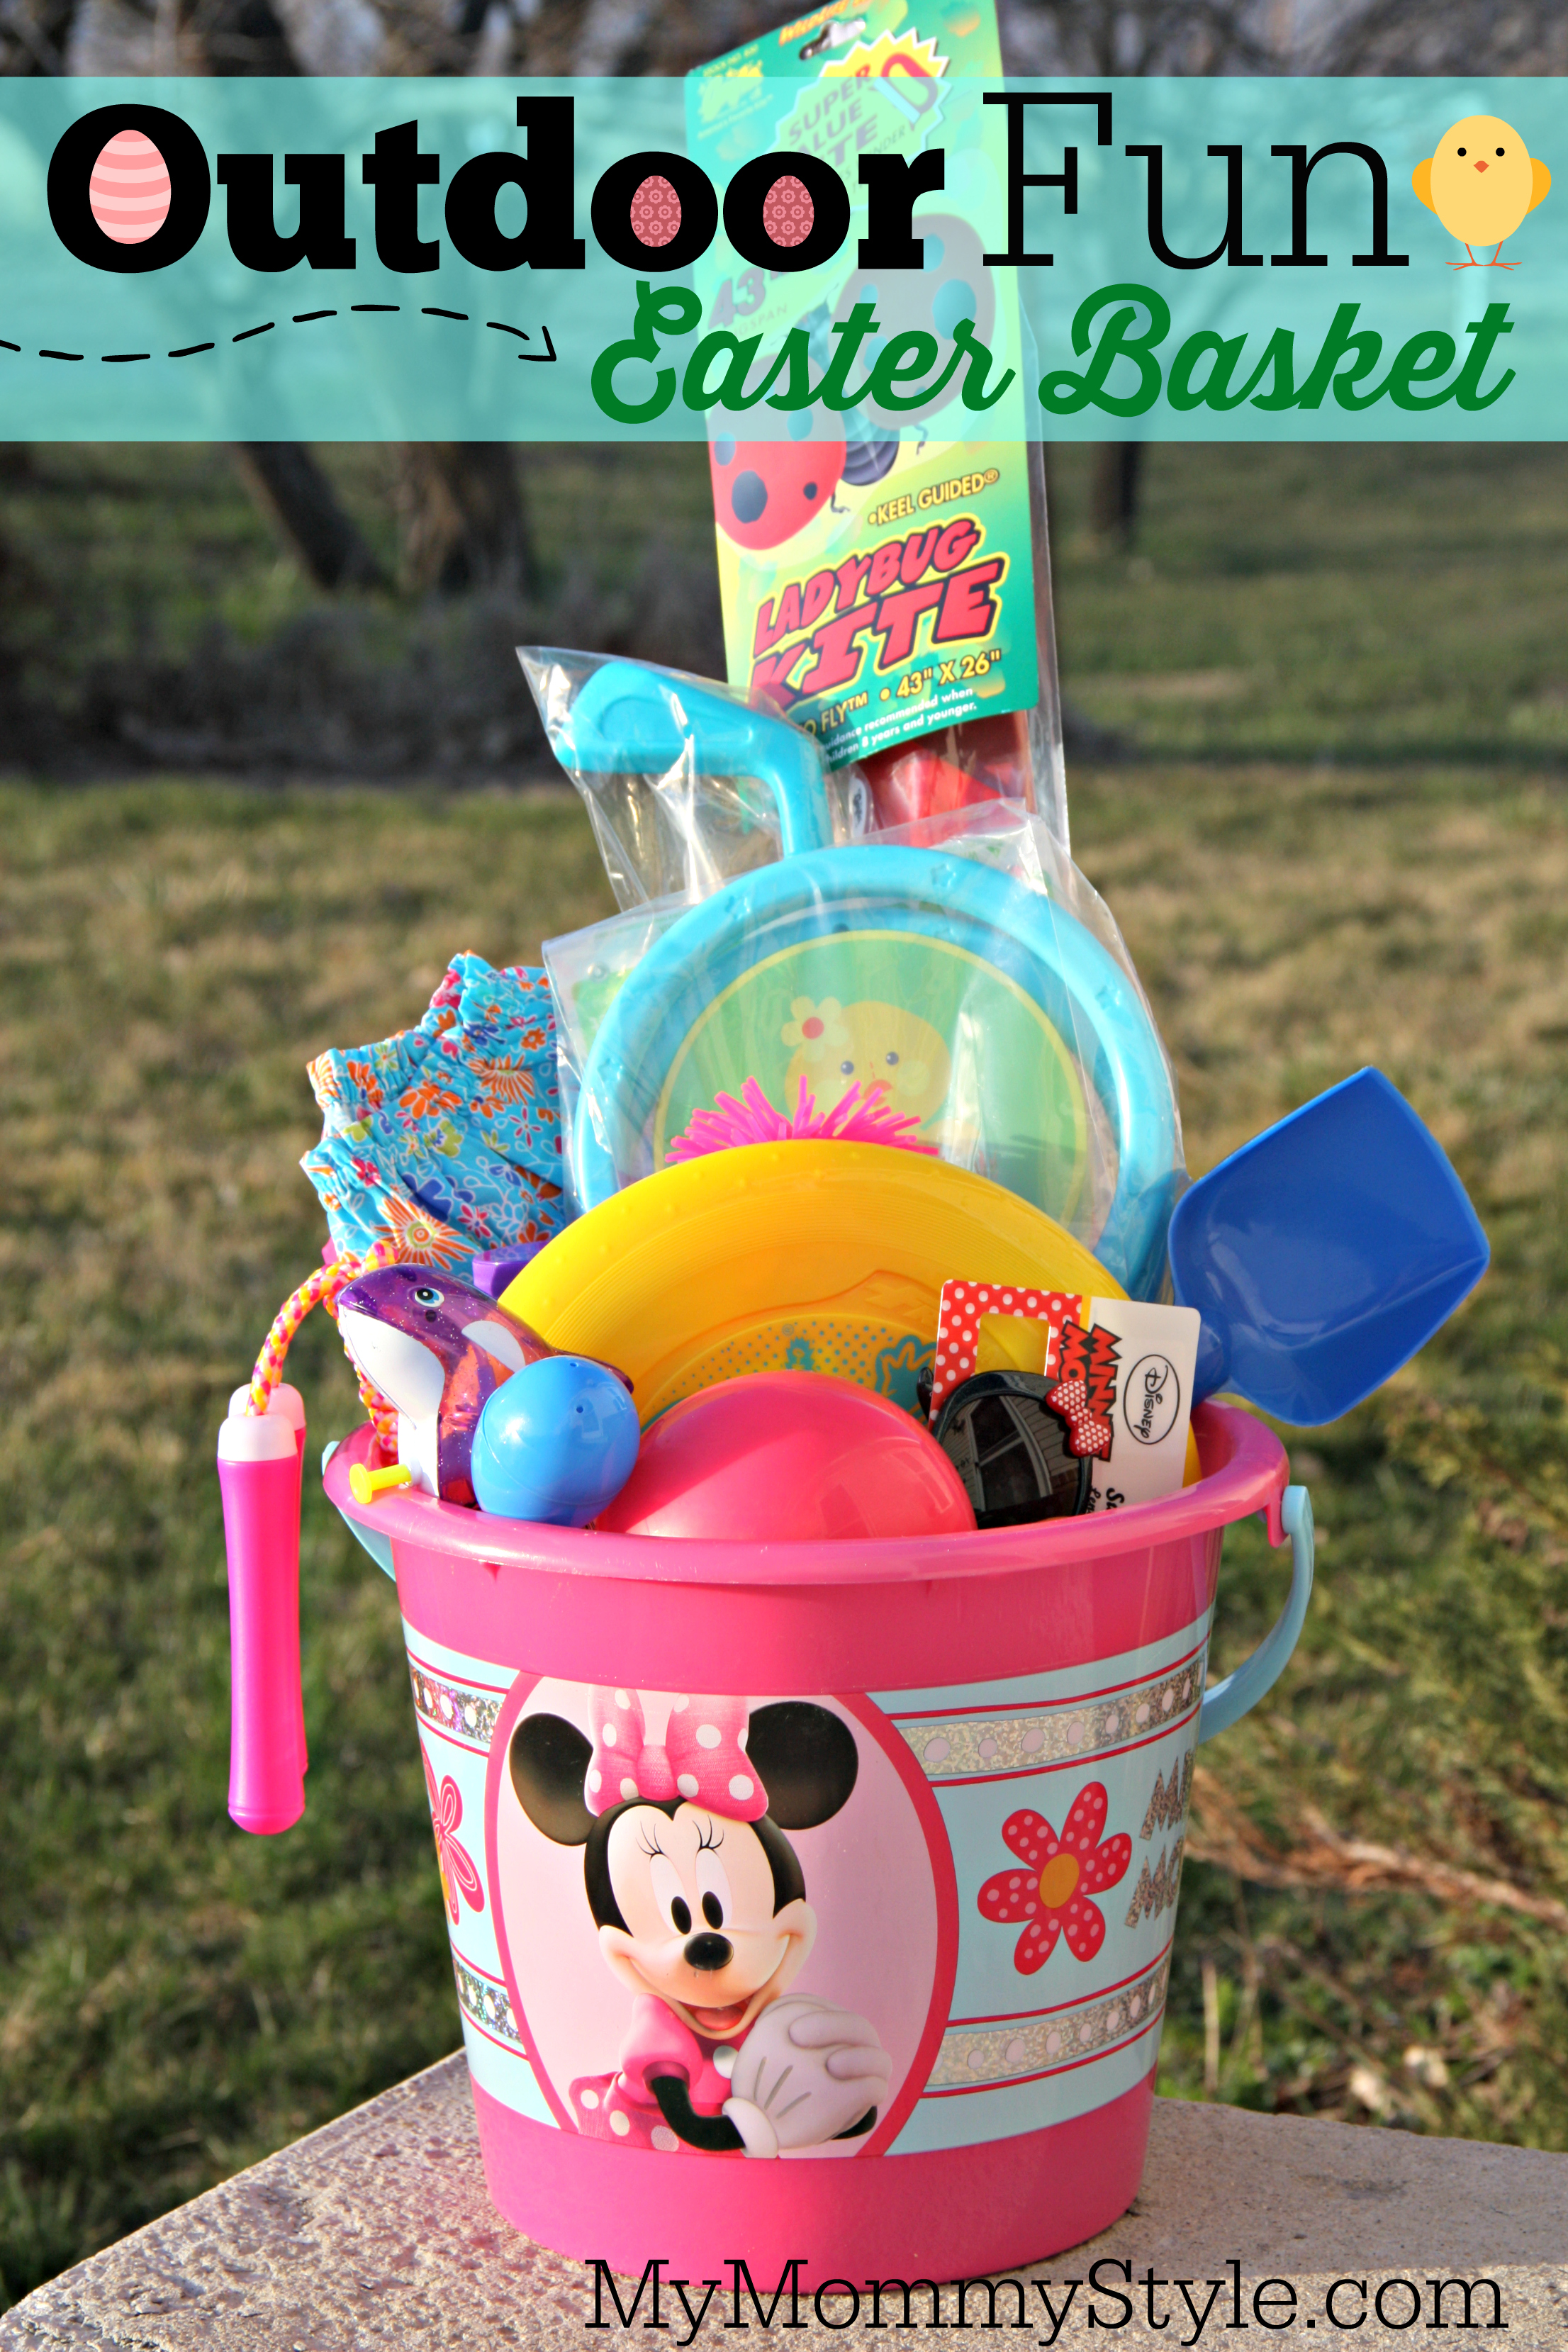 Peter Rabbit Candy Free Easter Basket